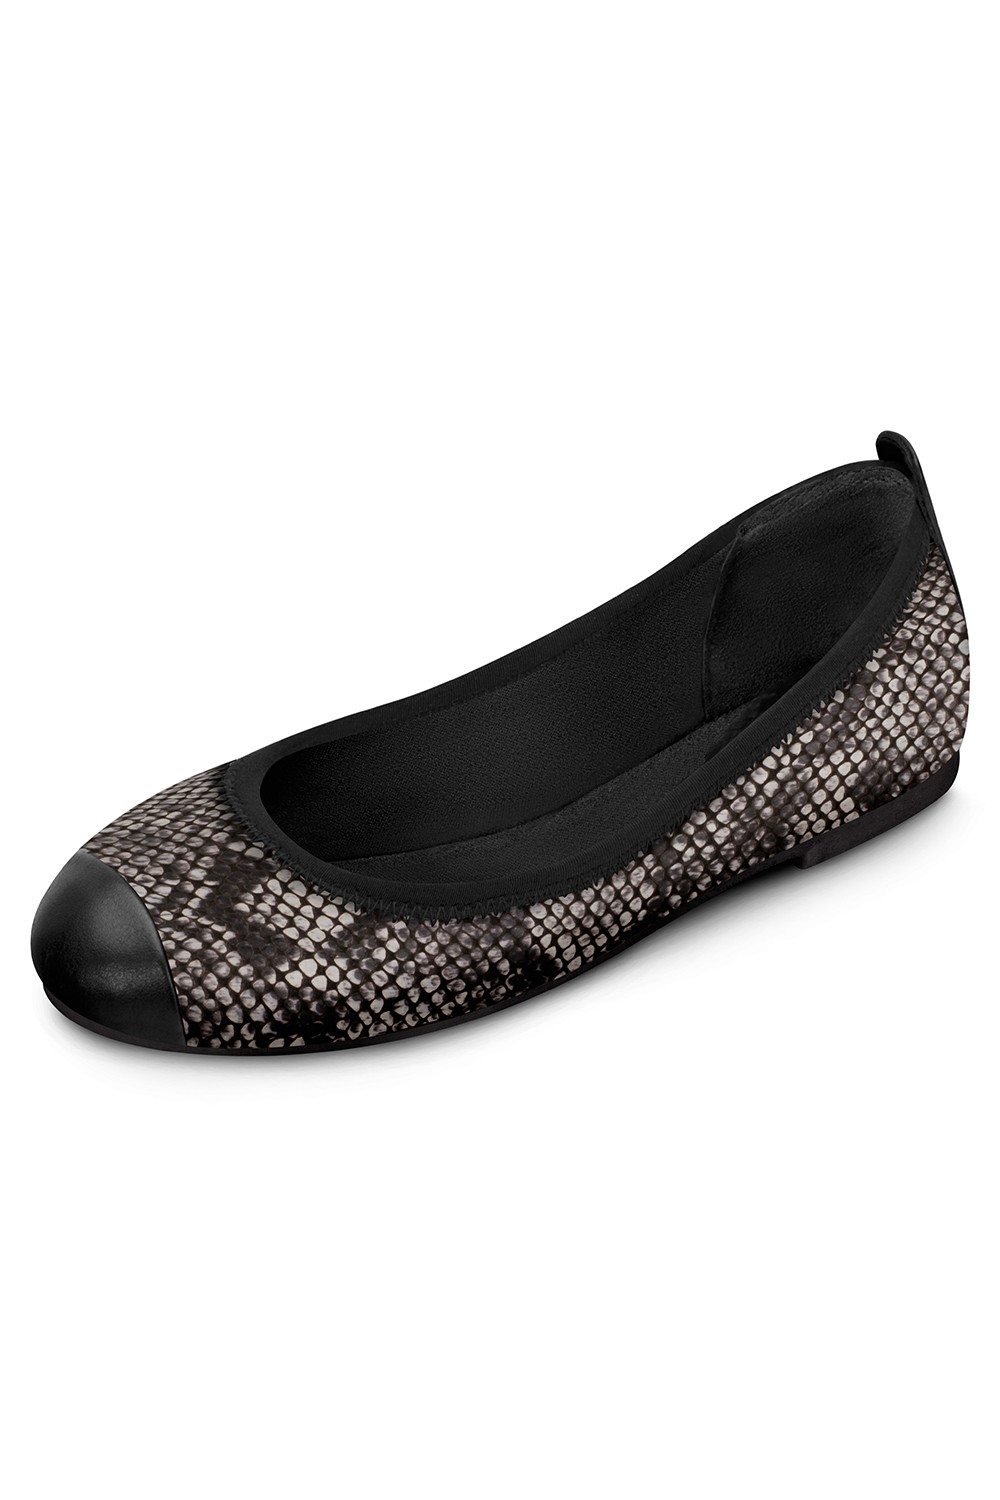 Python - Tween Girls Fashion Shoes